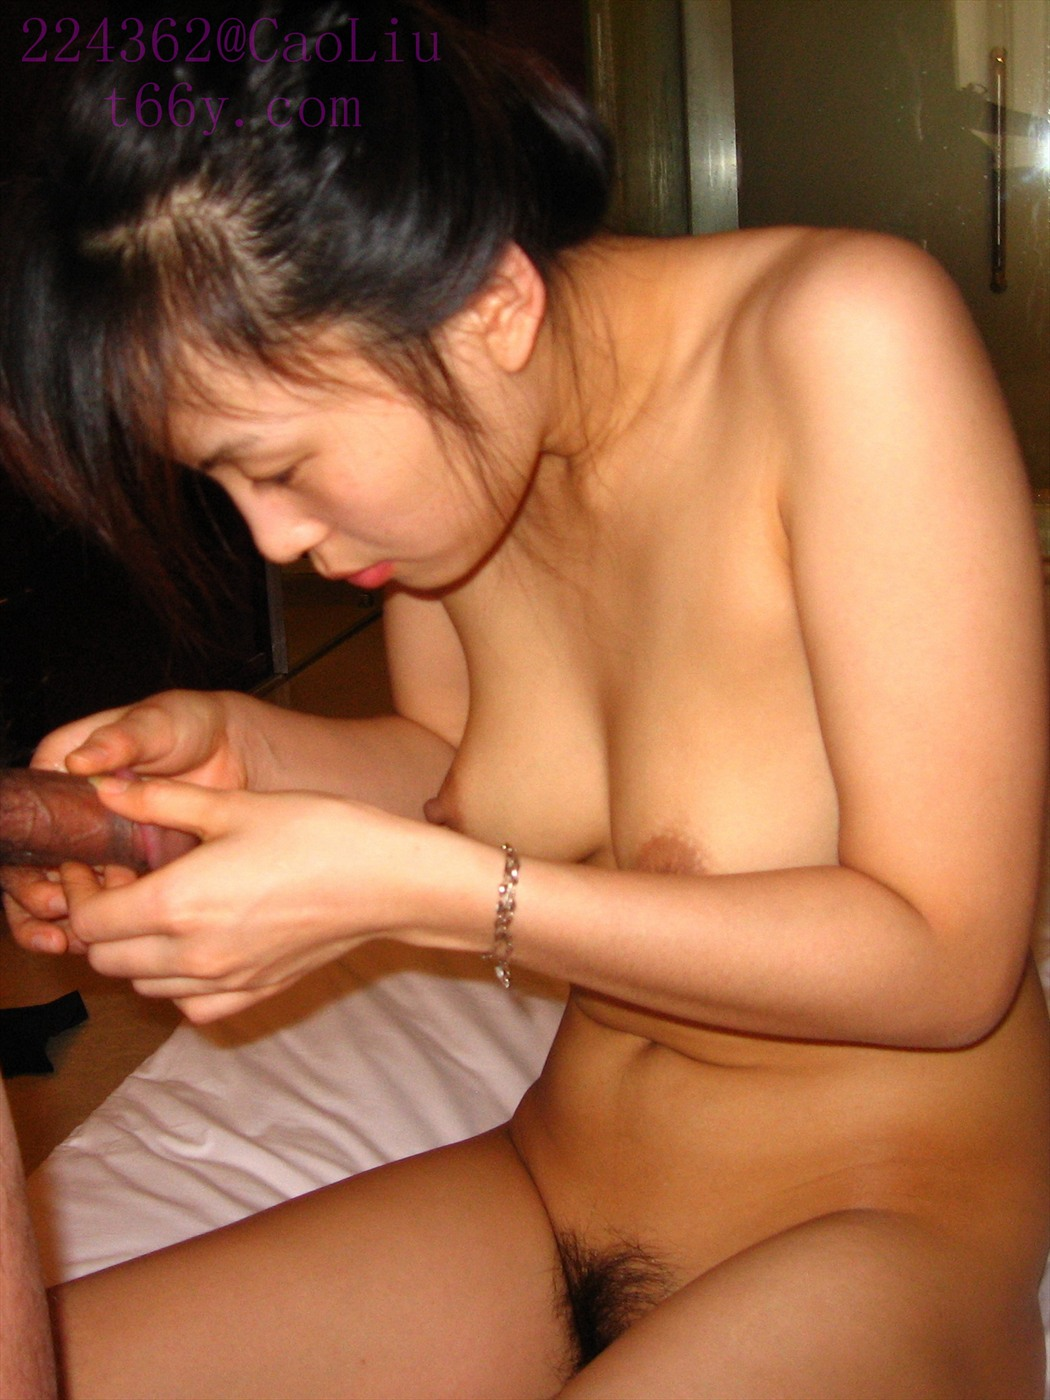 asian nude girlfriend « asian-gf-nude_(44) « free erotic pictures